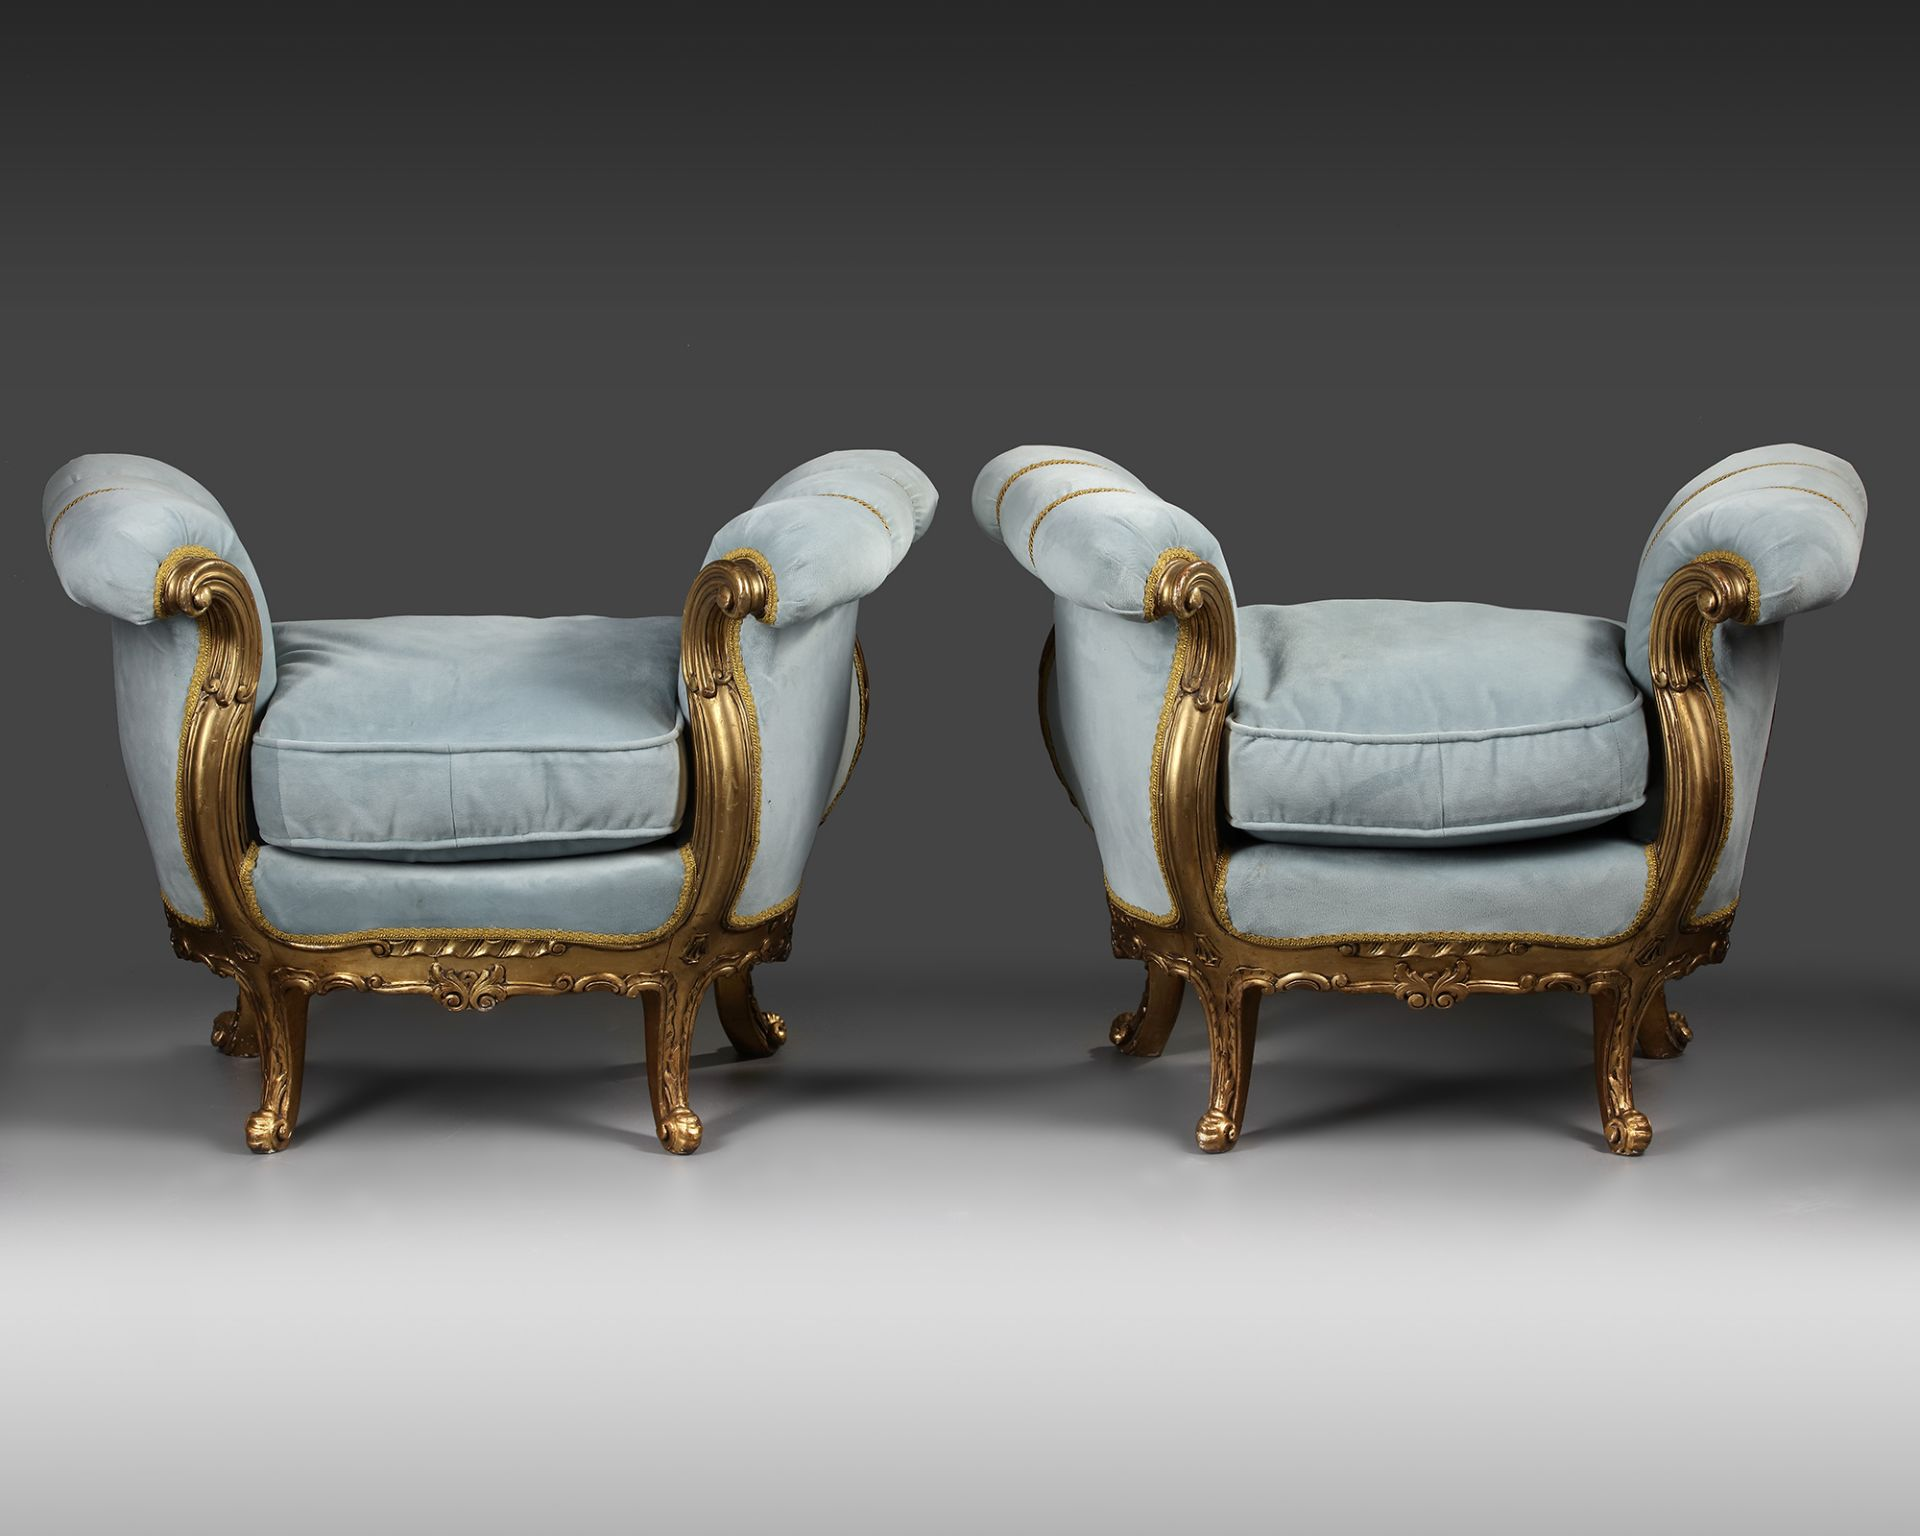 A PAIR OF FRENCH LOUIS XV STYLE GILT WOOD POUFS, LATE 19TH CENTURY - Image 4 of 5